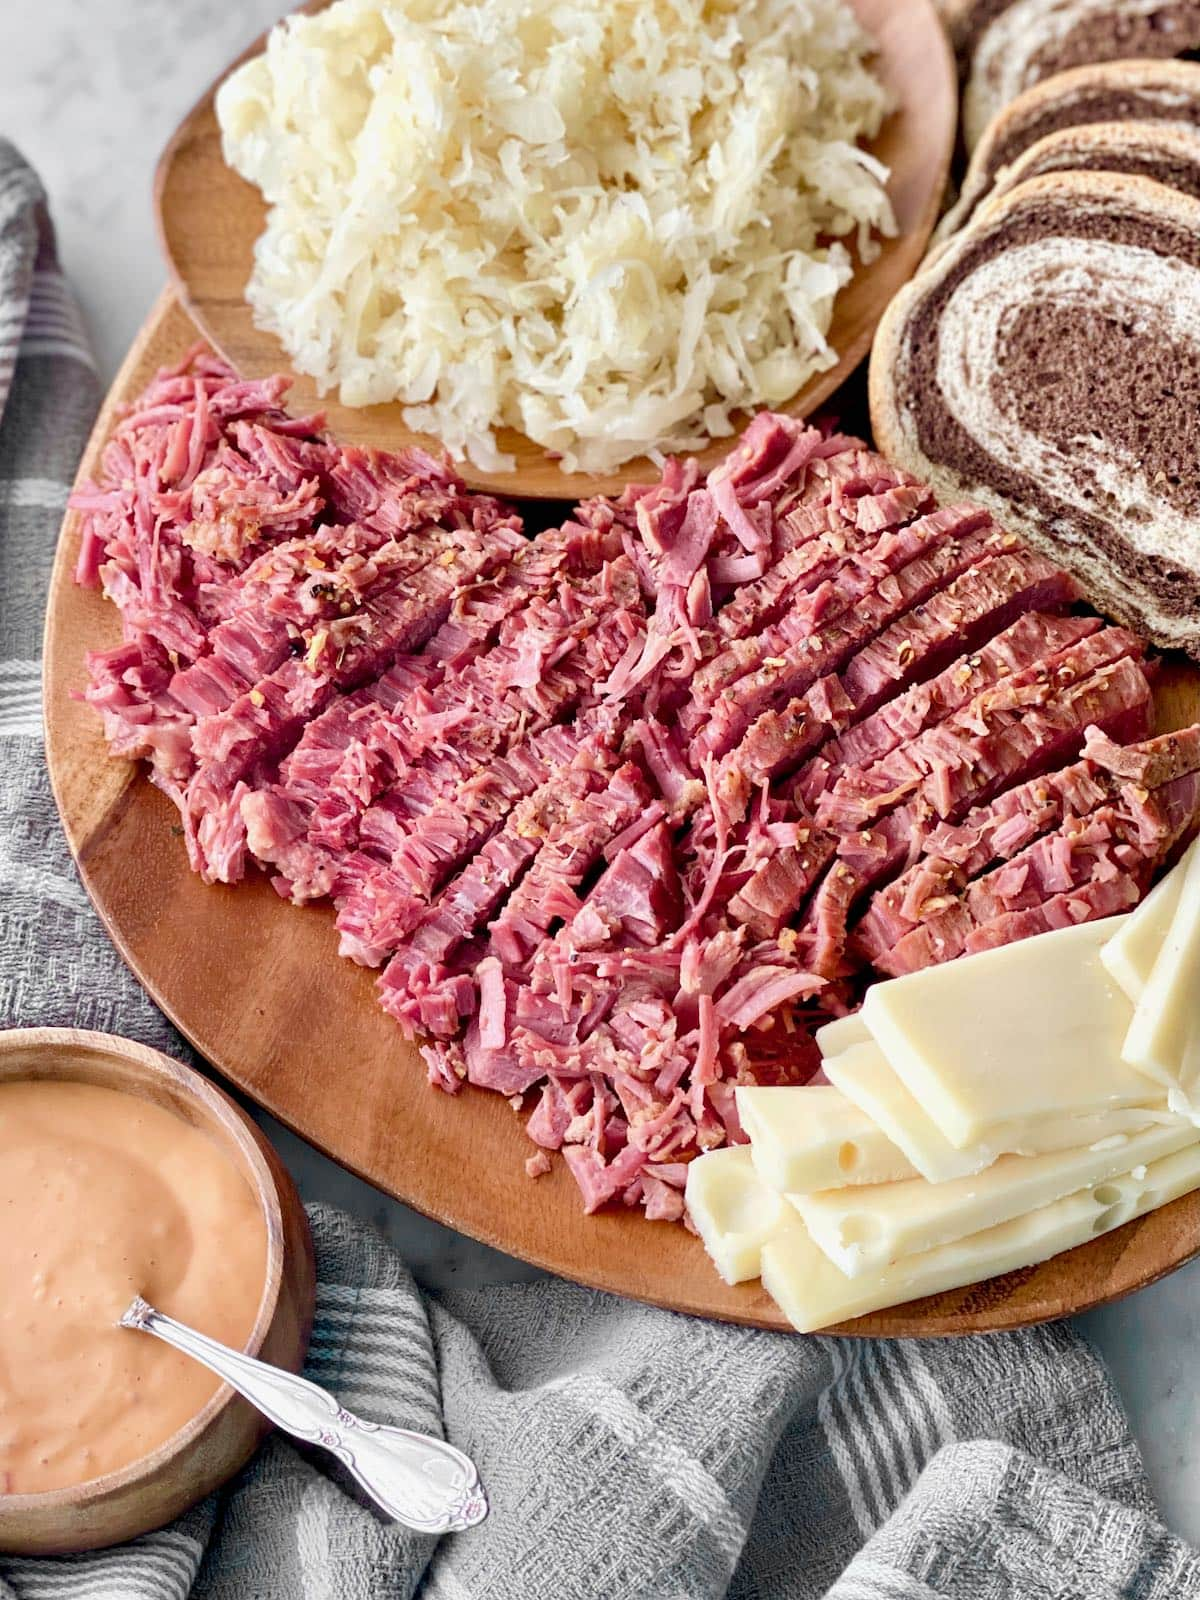 corned beef, sauerkraut, marbled rye, swiss cheese and Russian dressing on a platter.